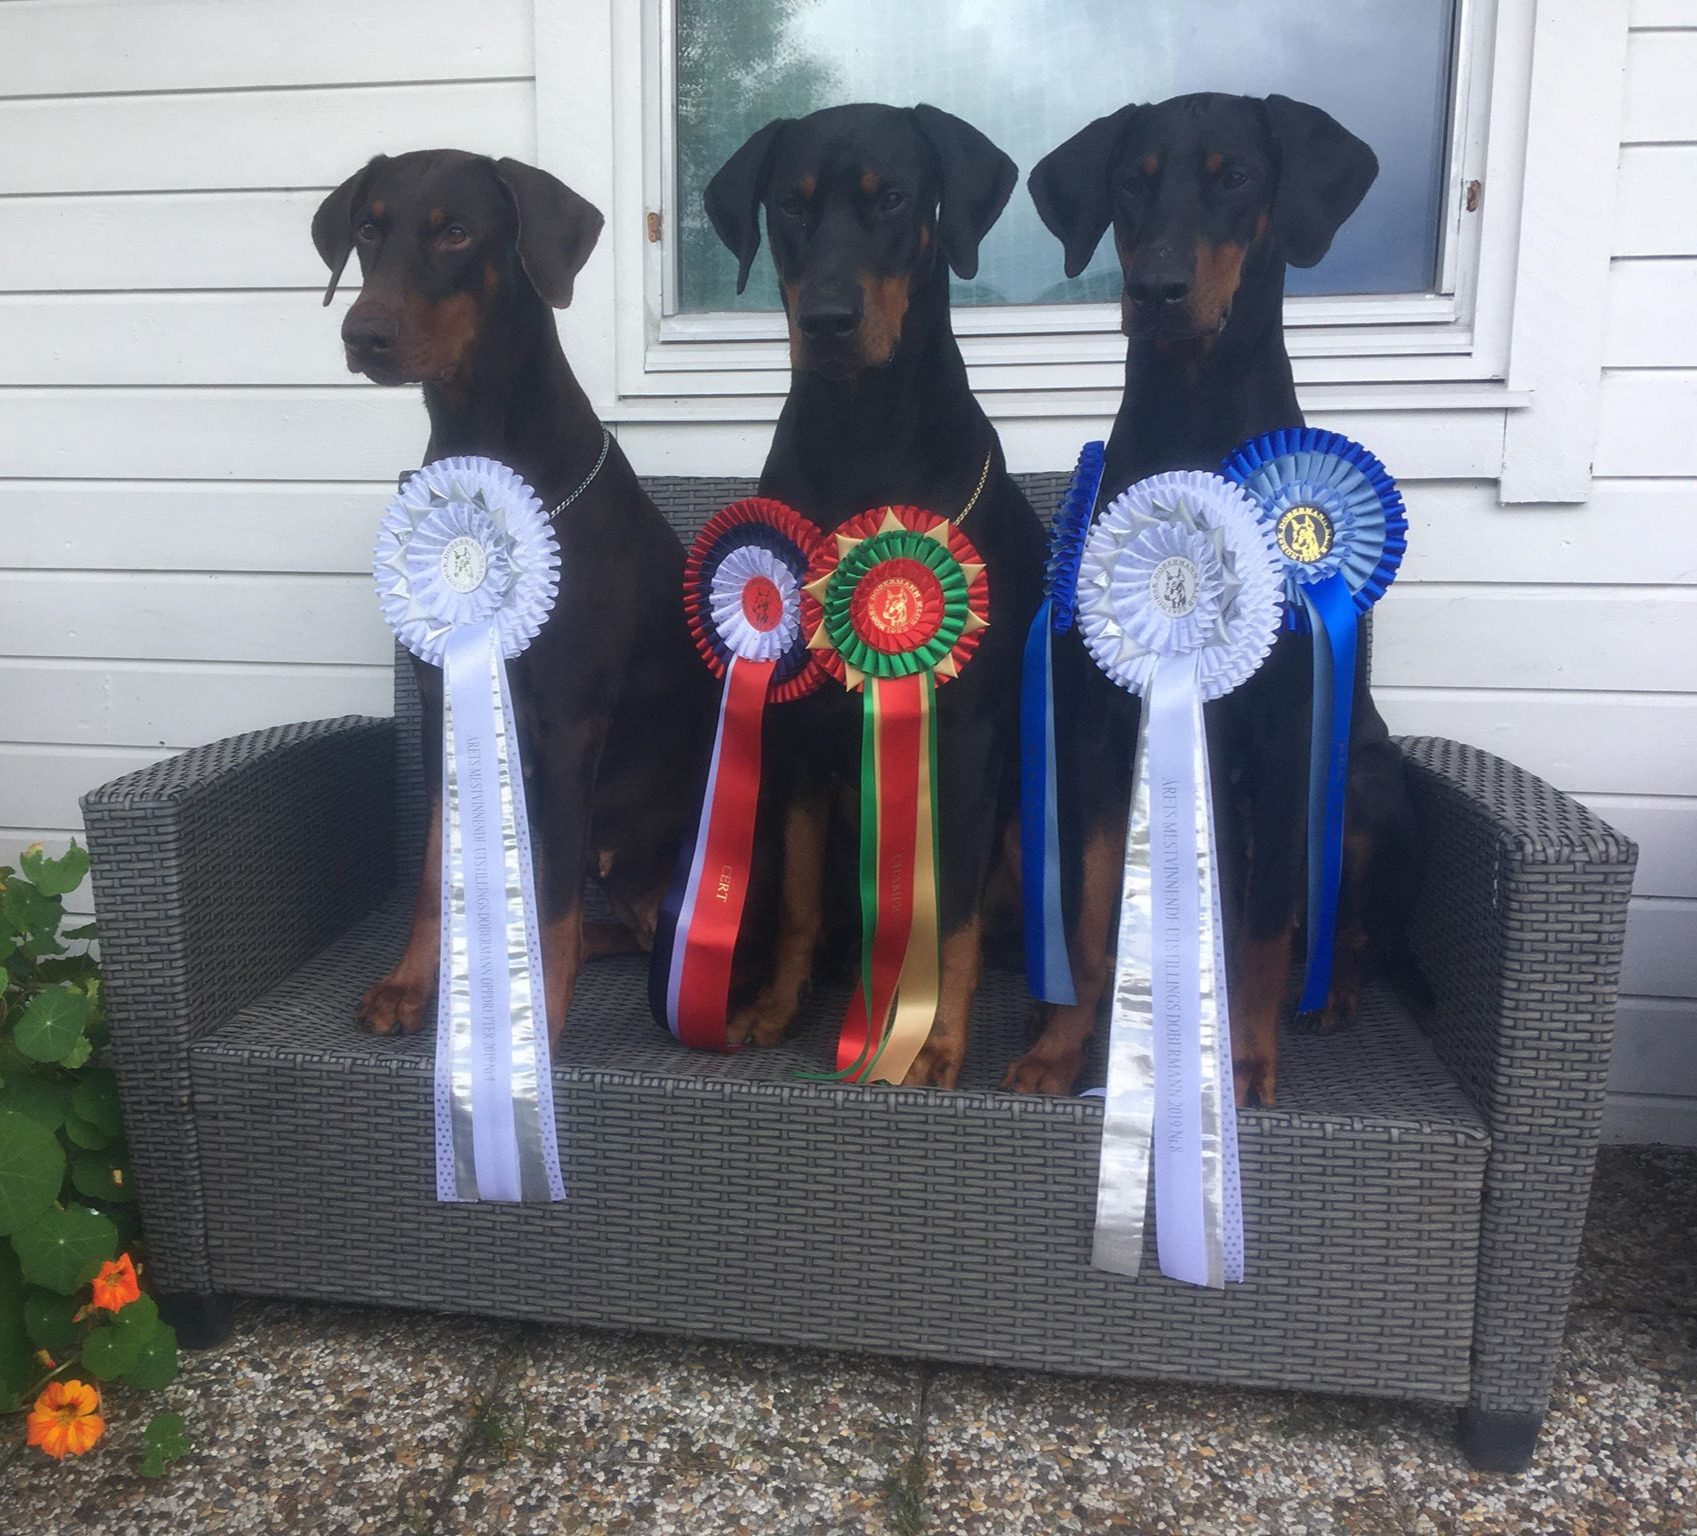 a new CH, 2 RES.CAC 6 Winners rosettes from 2019 competitions